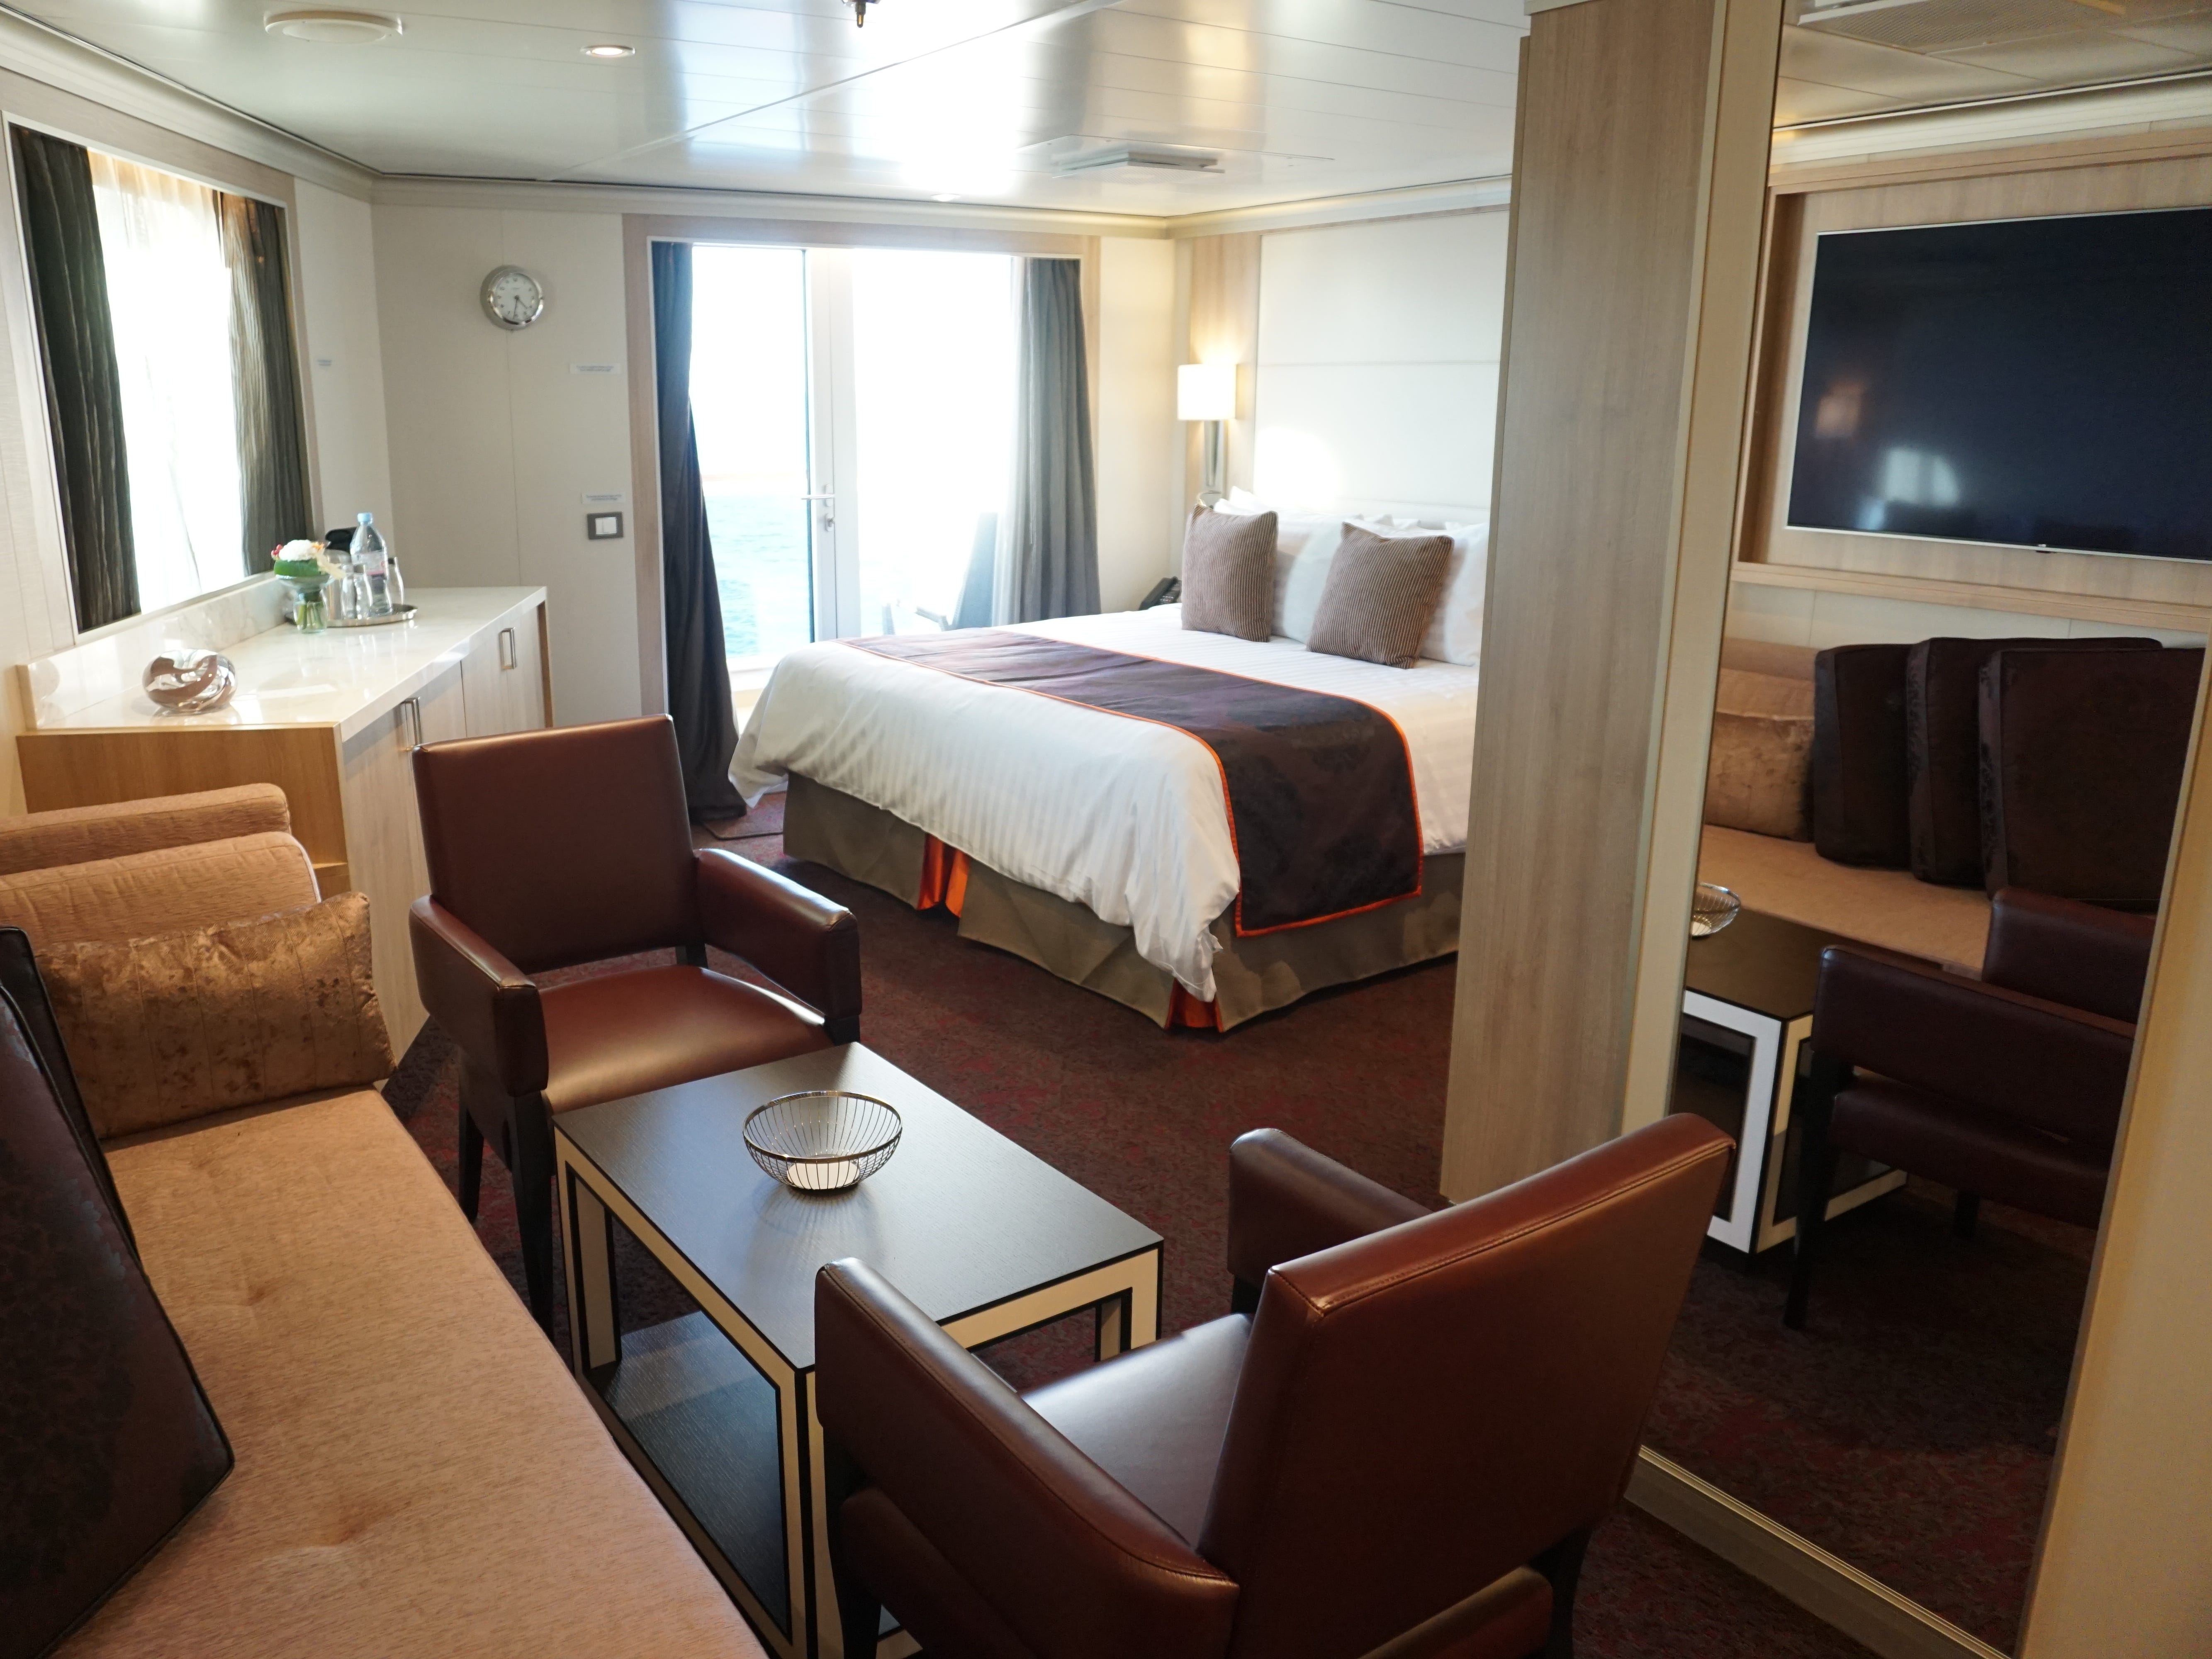 In the forward corners of Deck 5, there are large suites with a sitting area and separate bedroom.